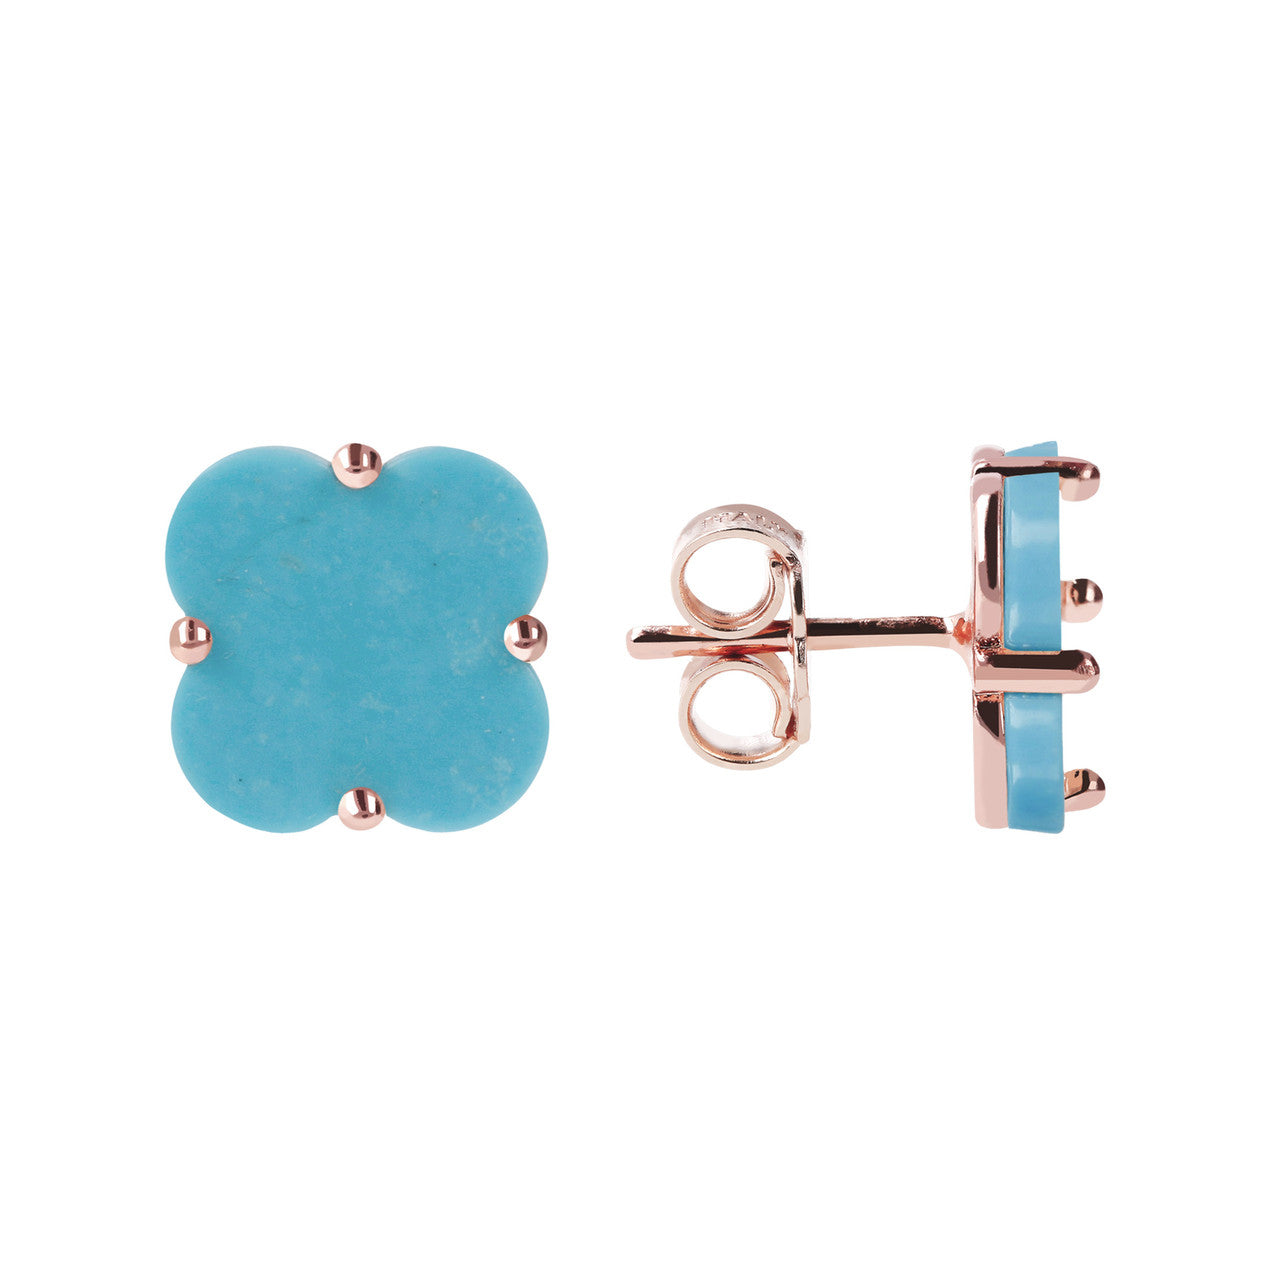 Clover Stud Earrings MAGNESITE front and side